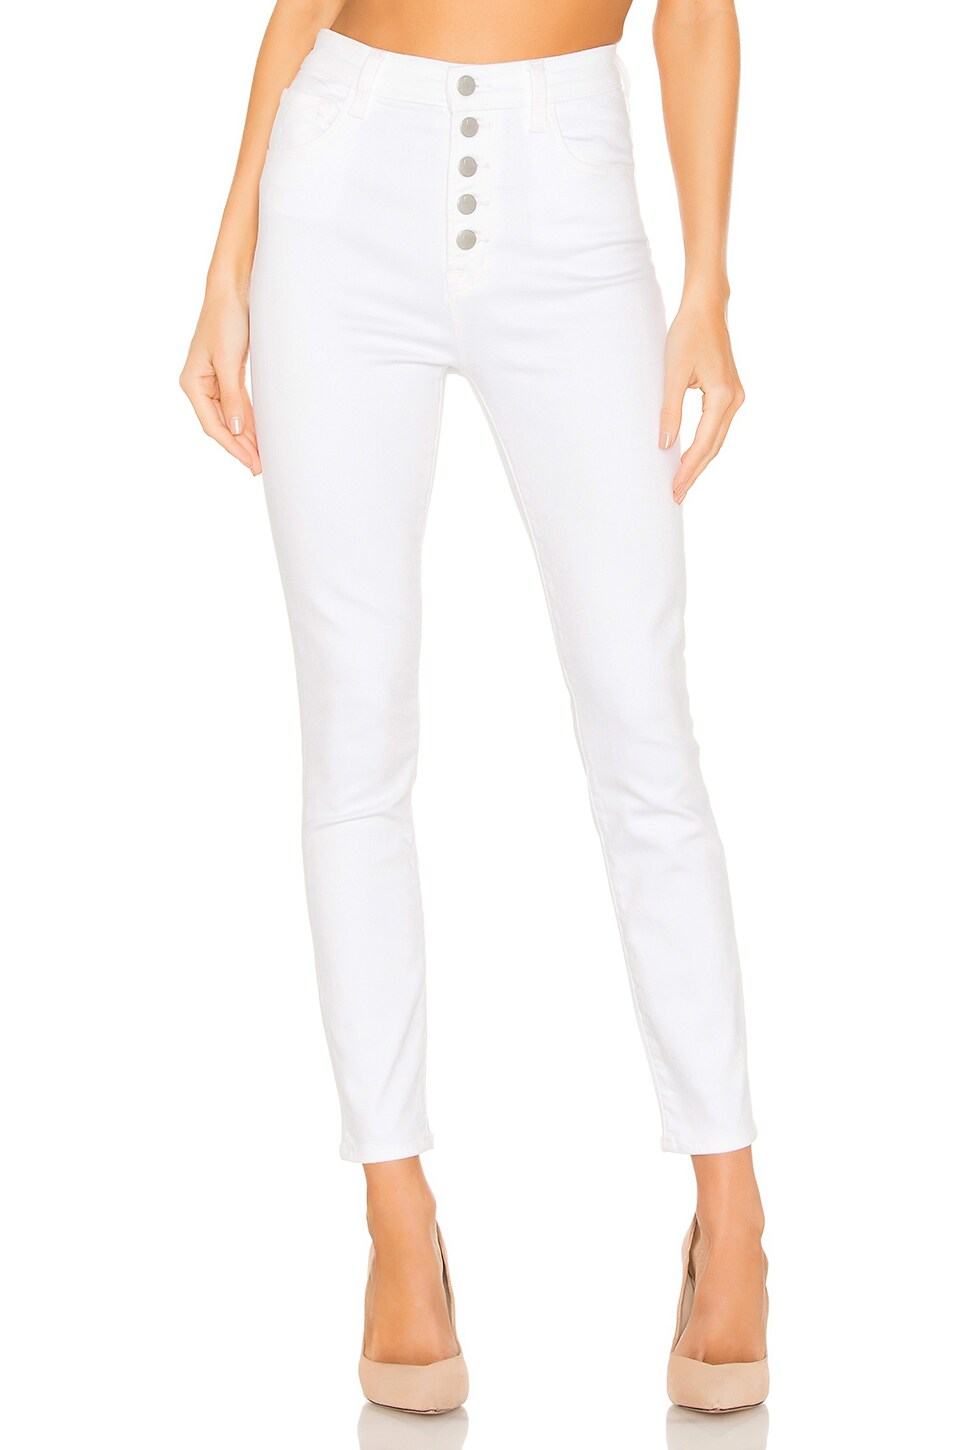 J Brand Lillie High Rise Crop Skinny in White